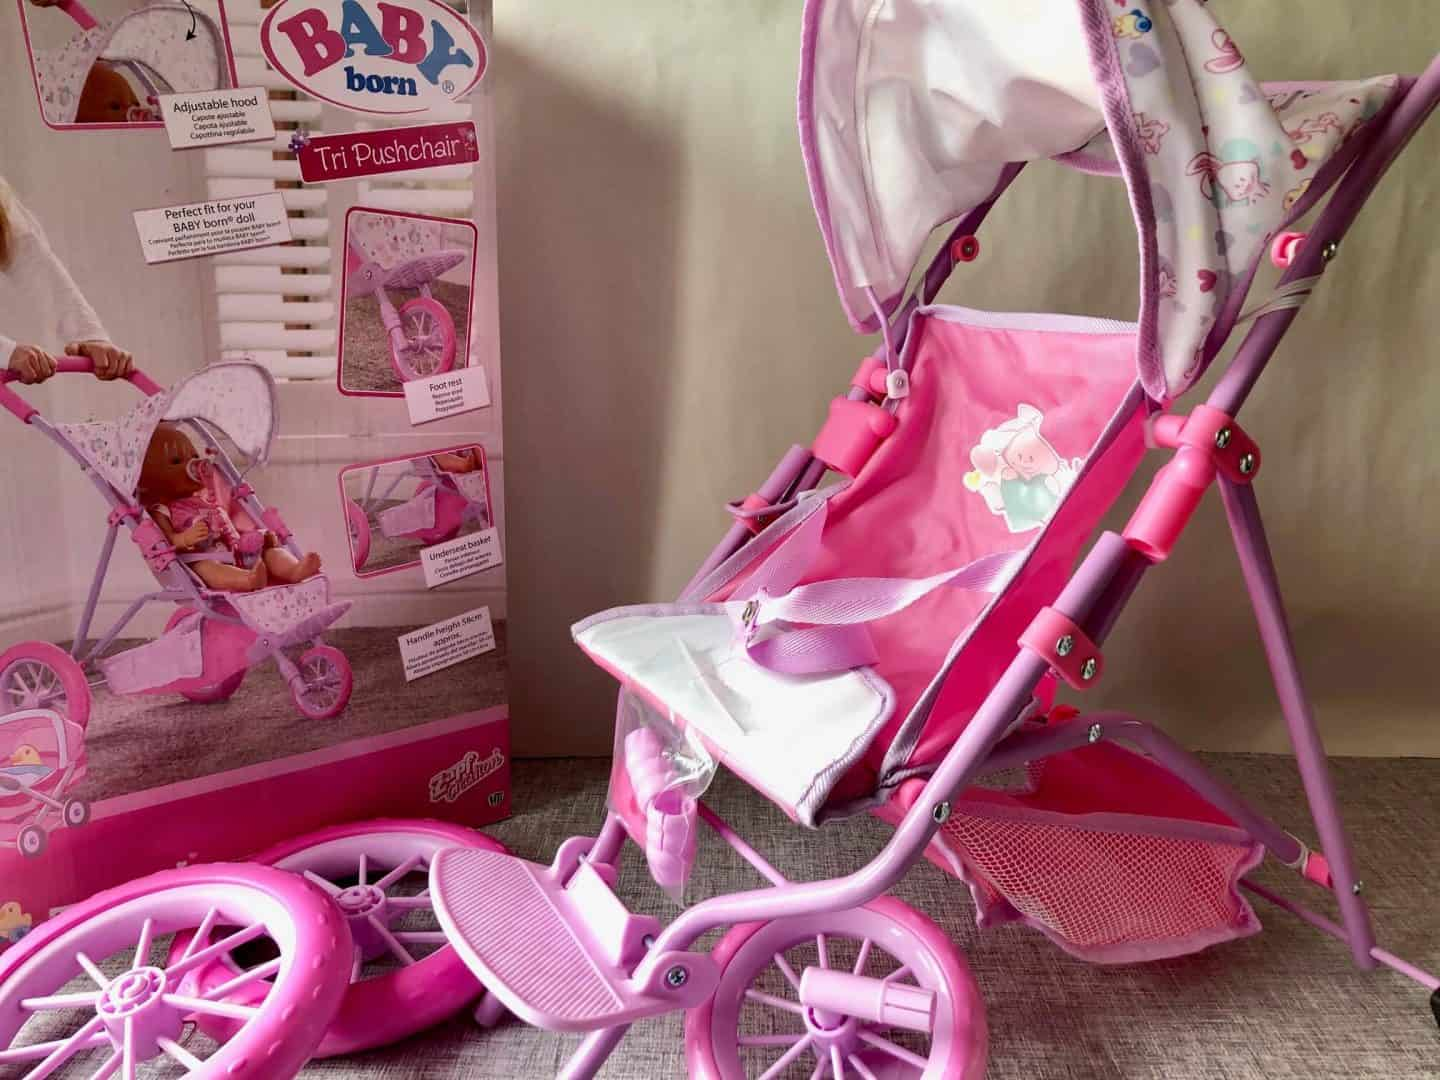 Baby Born Tri Pushchair Review and how to put together